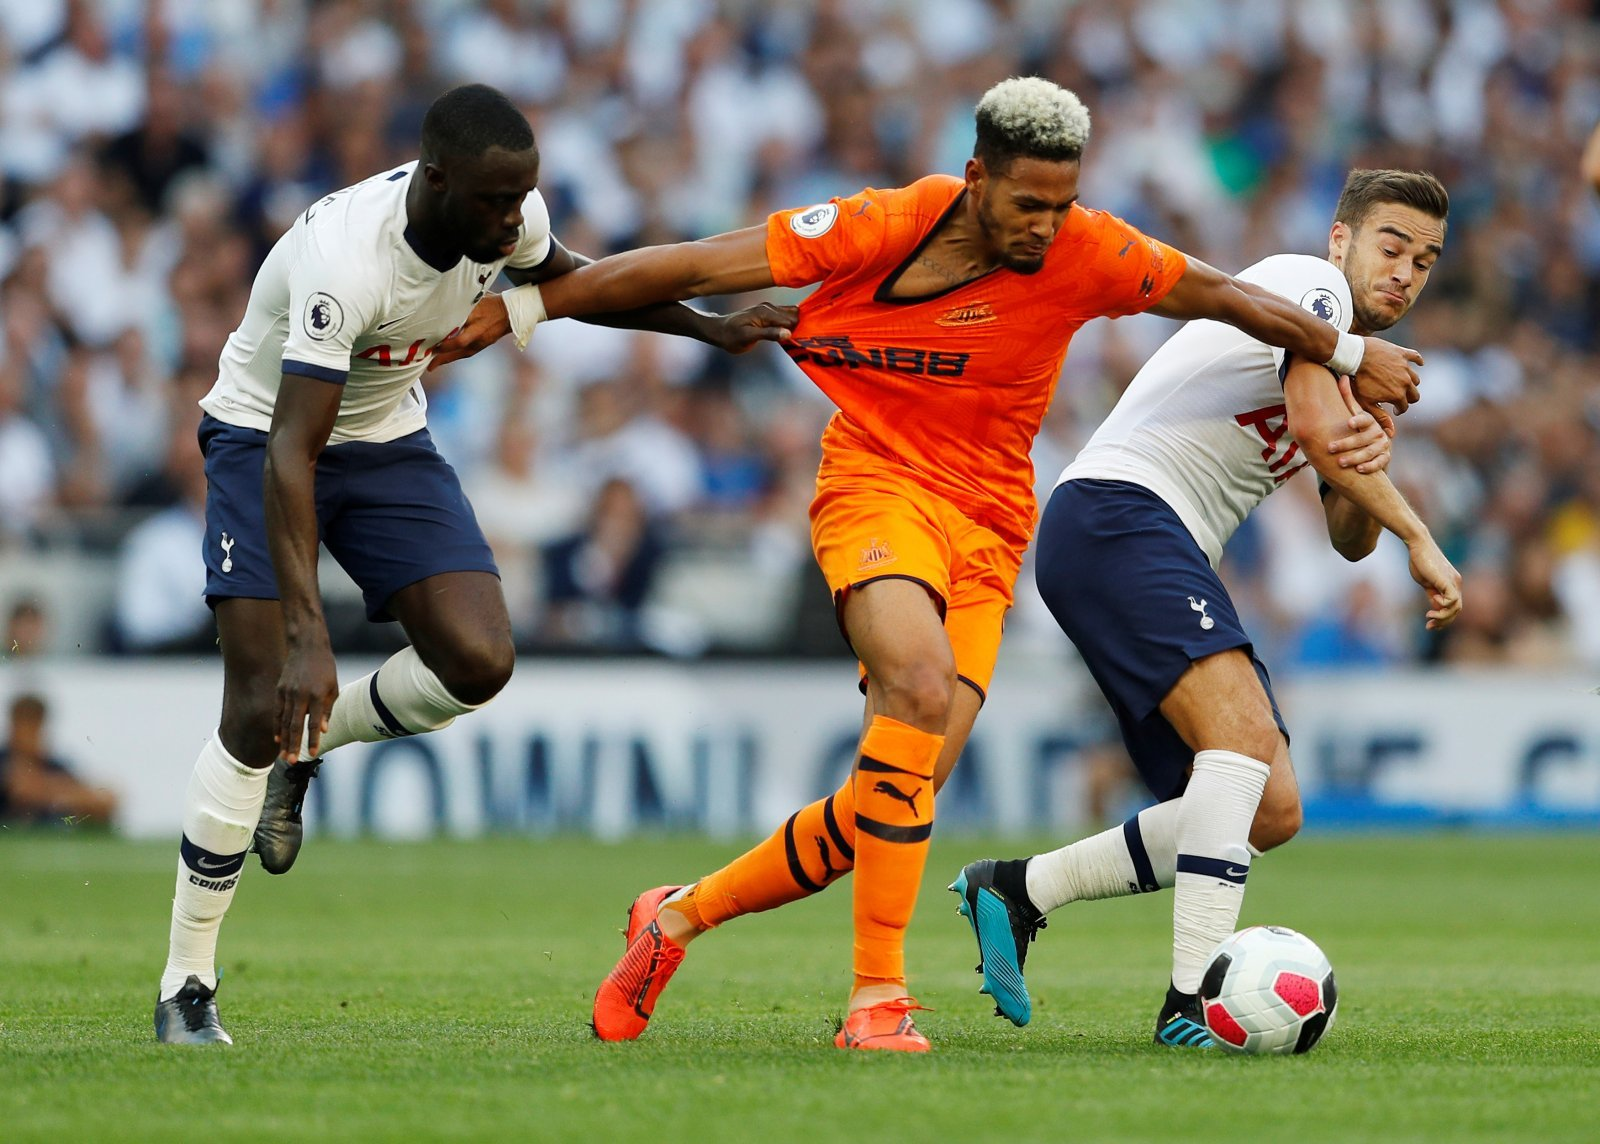 Newcastle United: Joelinton and Jamaal Lascelles available to face Watford